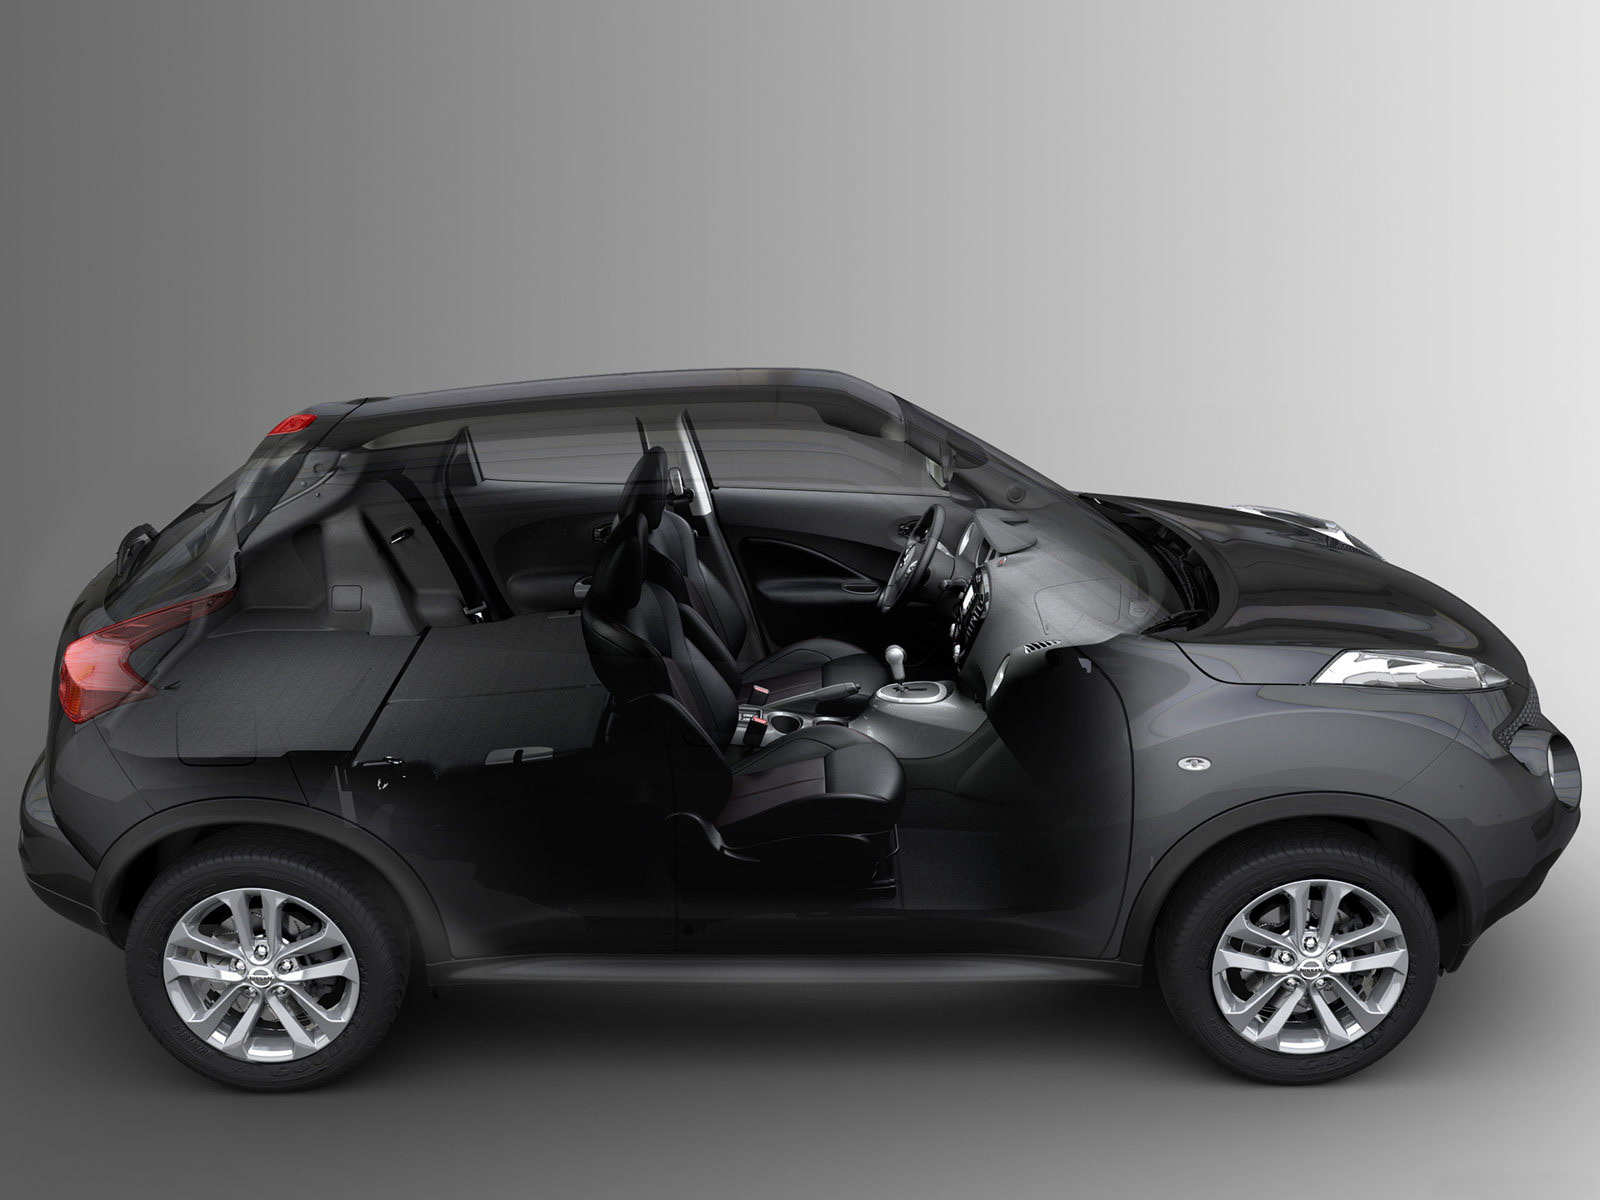 Nissan Juke 2011 Luxury Of Automotive Fast And Speed Car